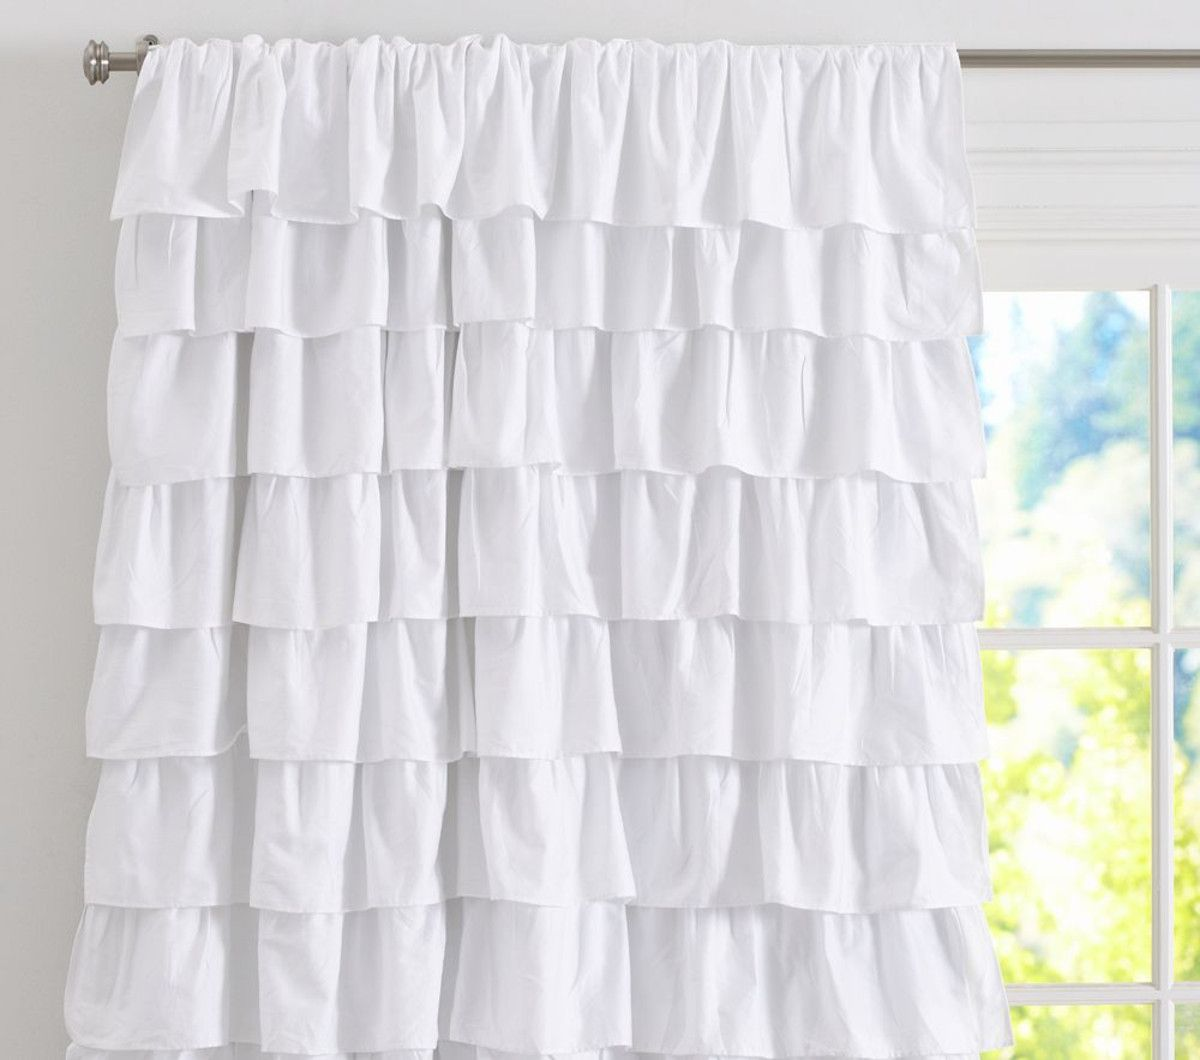 Nursery window ideas  ruffle blackout panel pretty but also blocks out  my girls